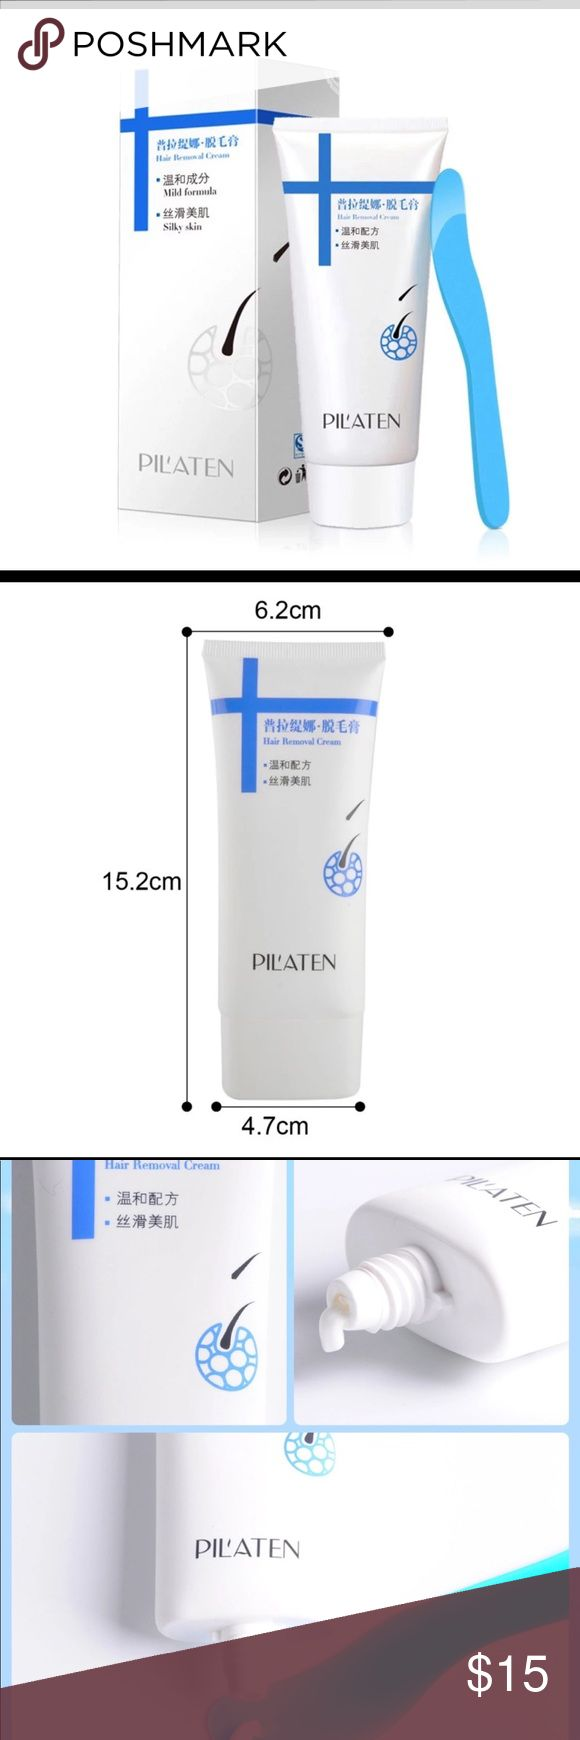 Pilaten Painless Depilatory Cream Legs , Armpit Pilaten Painless Depilatory cream Legs Depilation Cream for Hair Removal Men and women for armpit. Condition: A brand - new, unopened, undamaged item, Model:cream Size: 100 g Tube  Gender: Unisex Shelf life: 3 years Features: destroy hair roots, slow future hair growth. Haw to use: 1.Apply on a dry skin 2.Take appropriate amount and spread evenly across the traget area 3.Wait for 5 to 10 minutes 4.Wipe or scrape the cream and hair away 5.Rinse…